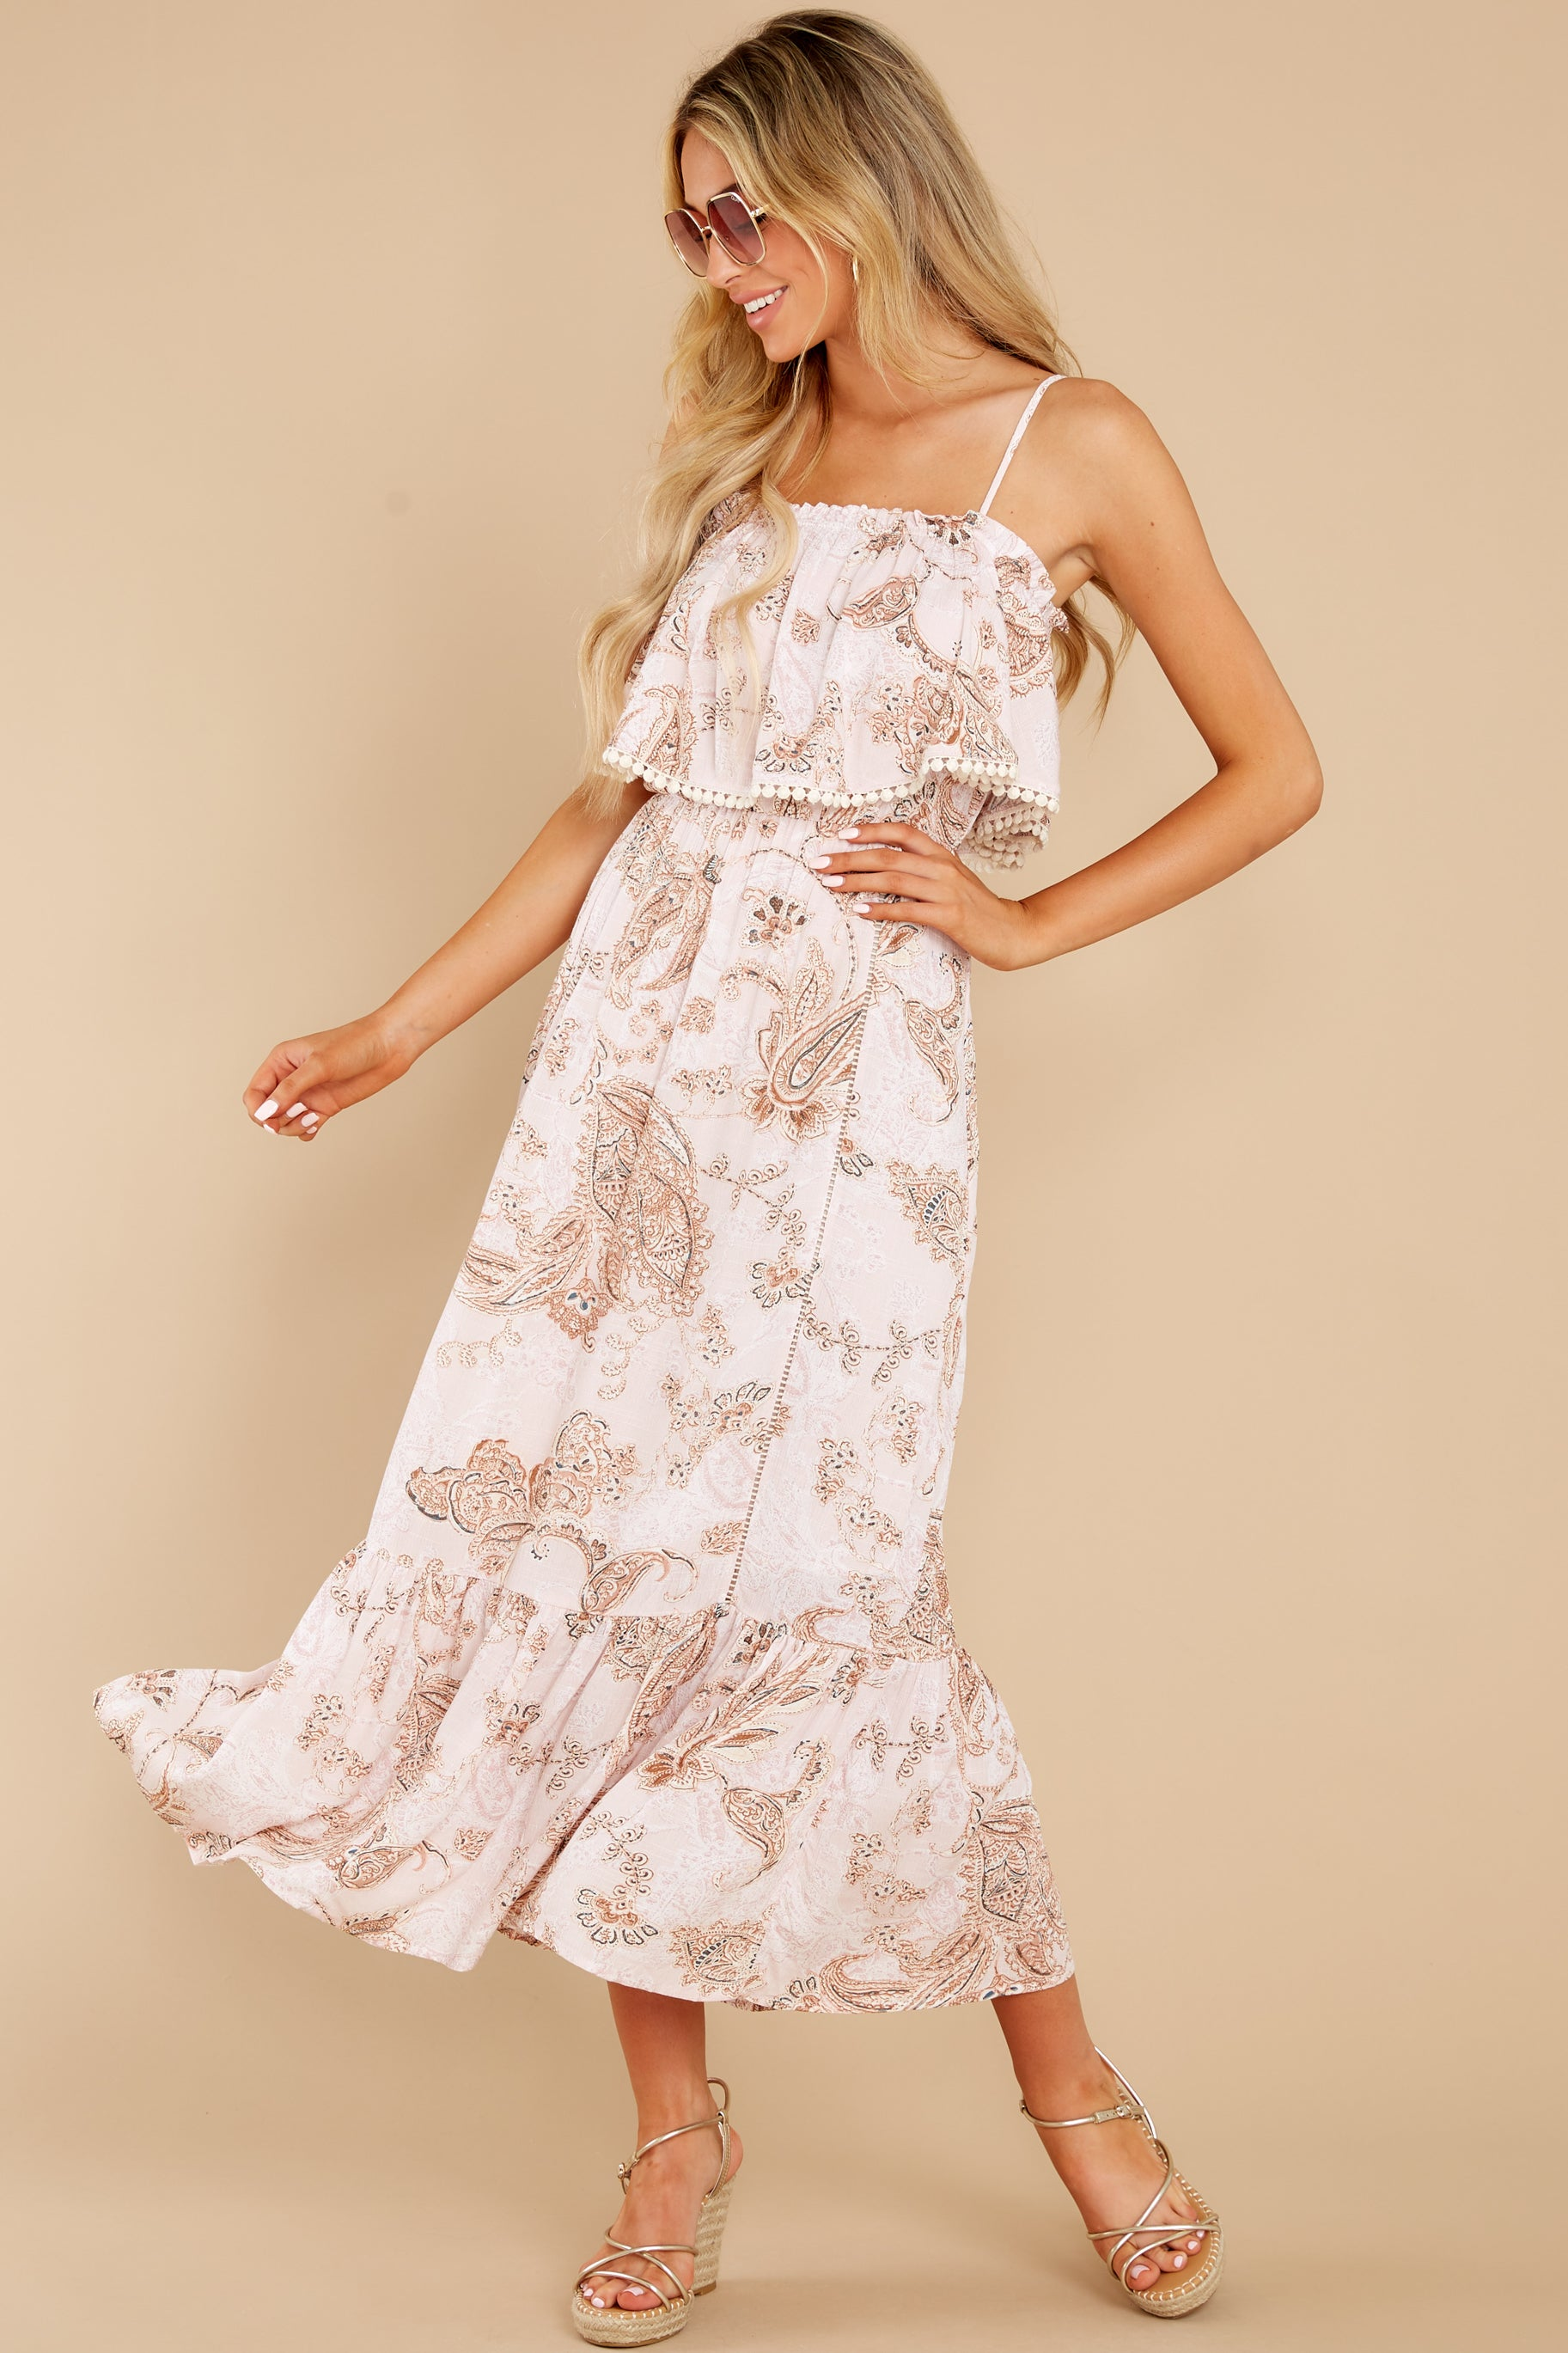 2 Tableside Cutie Dusty Pink Floral Print Maxi Dress at reddress.com